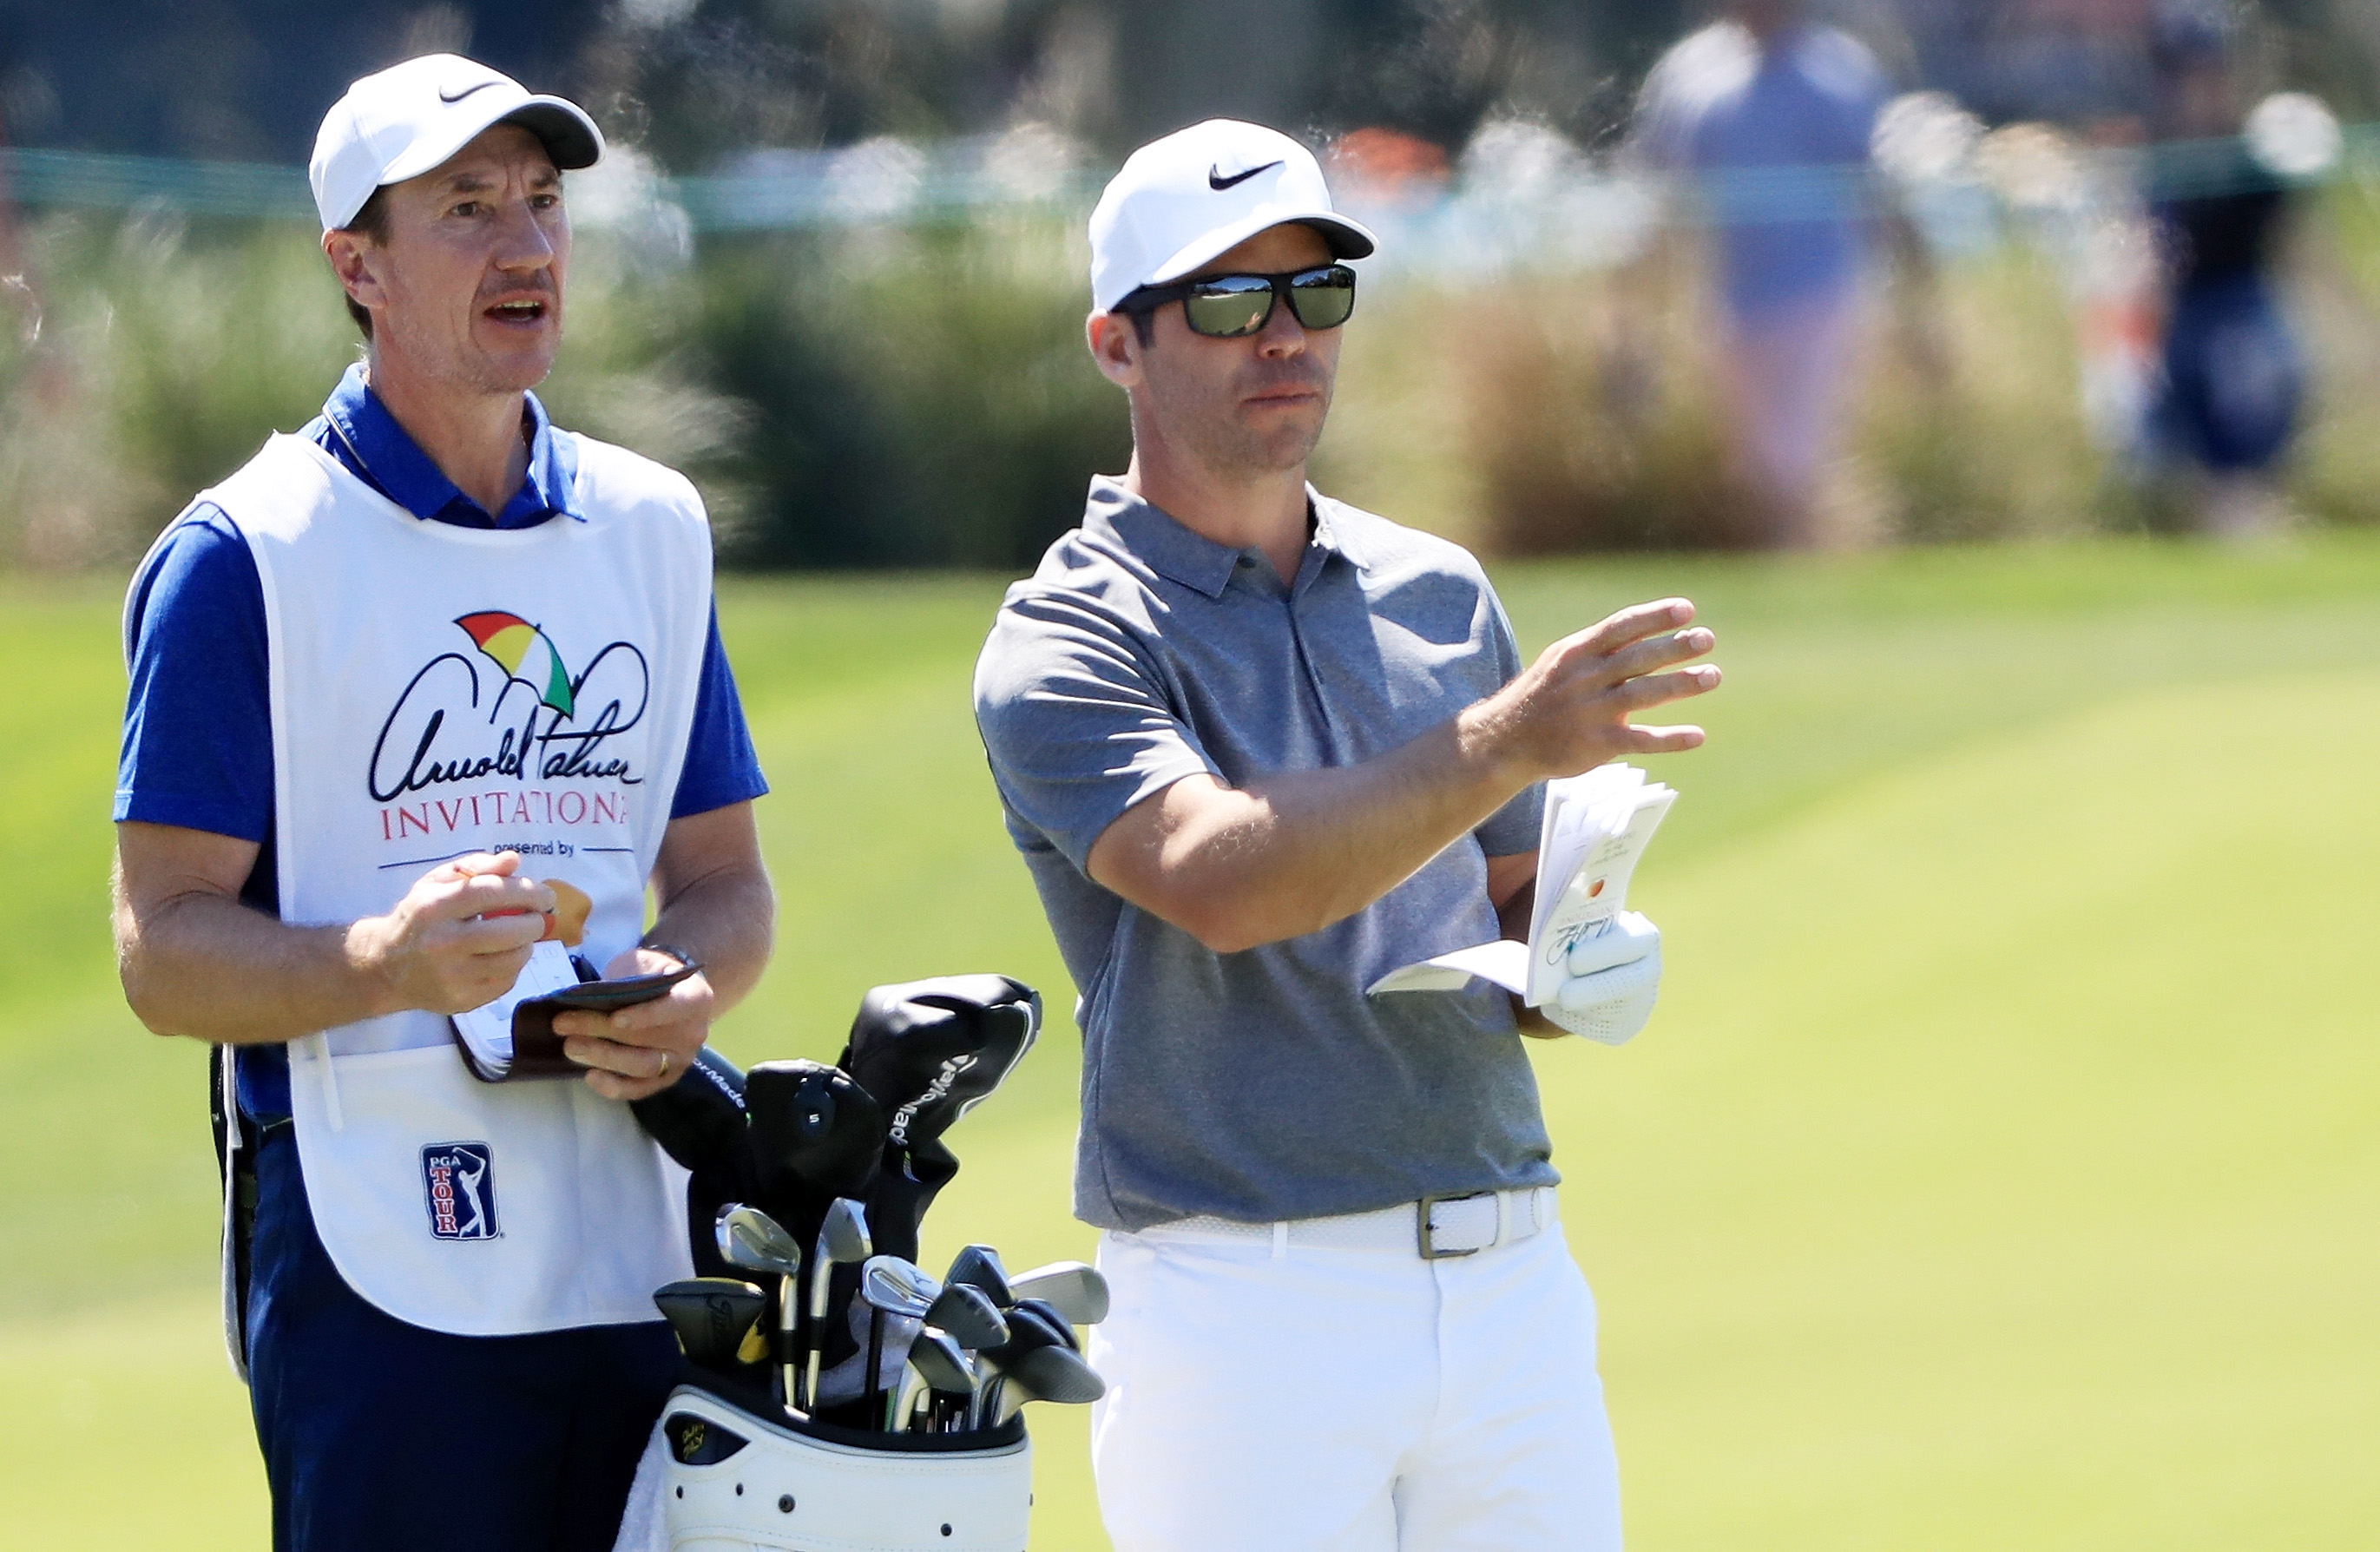 Paul Casey has reached the WGC-Dell Match Play finals twice in his career, but has never won the event.